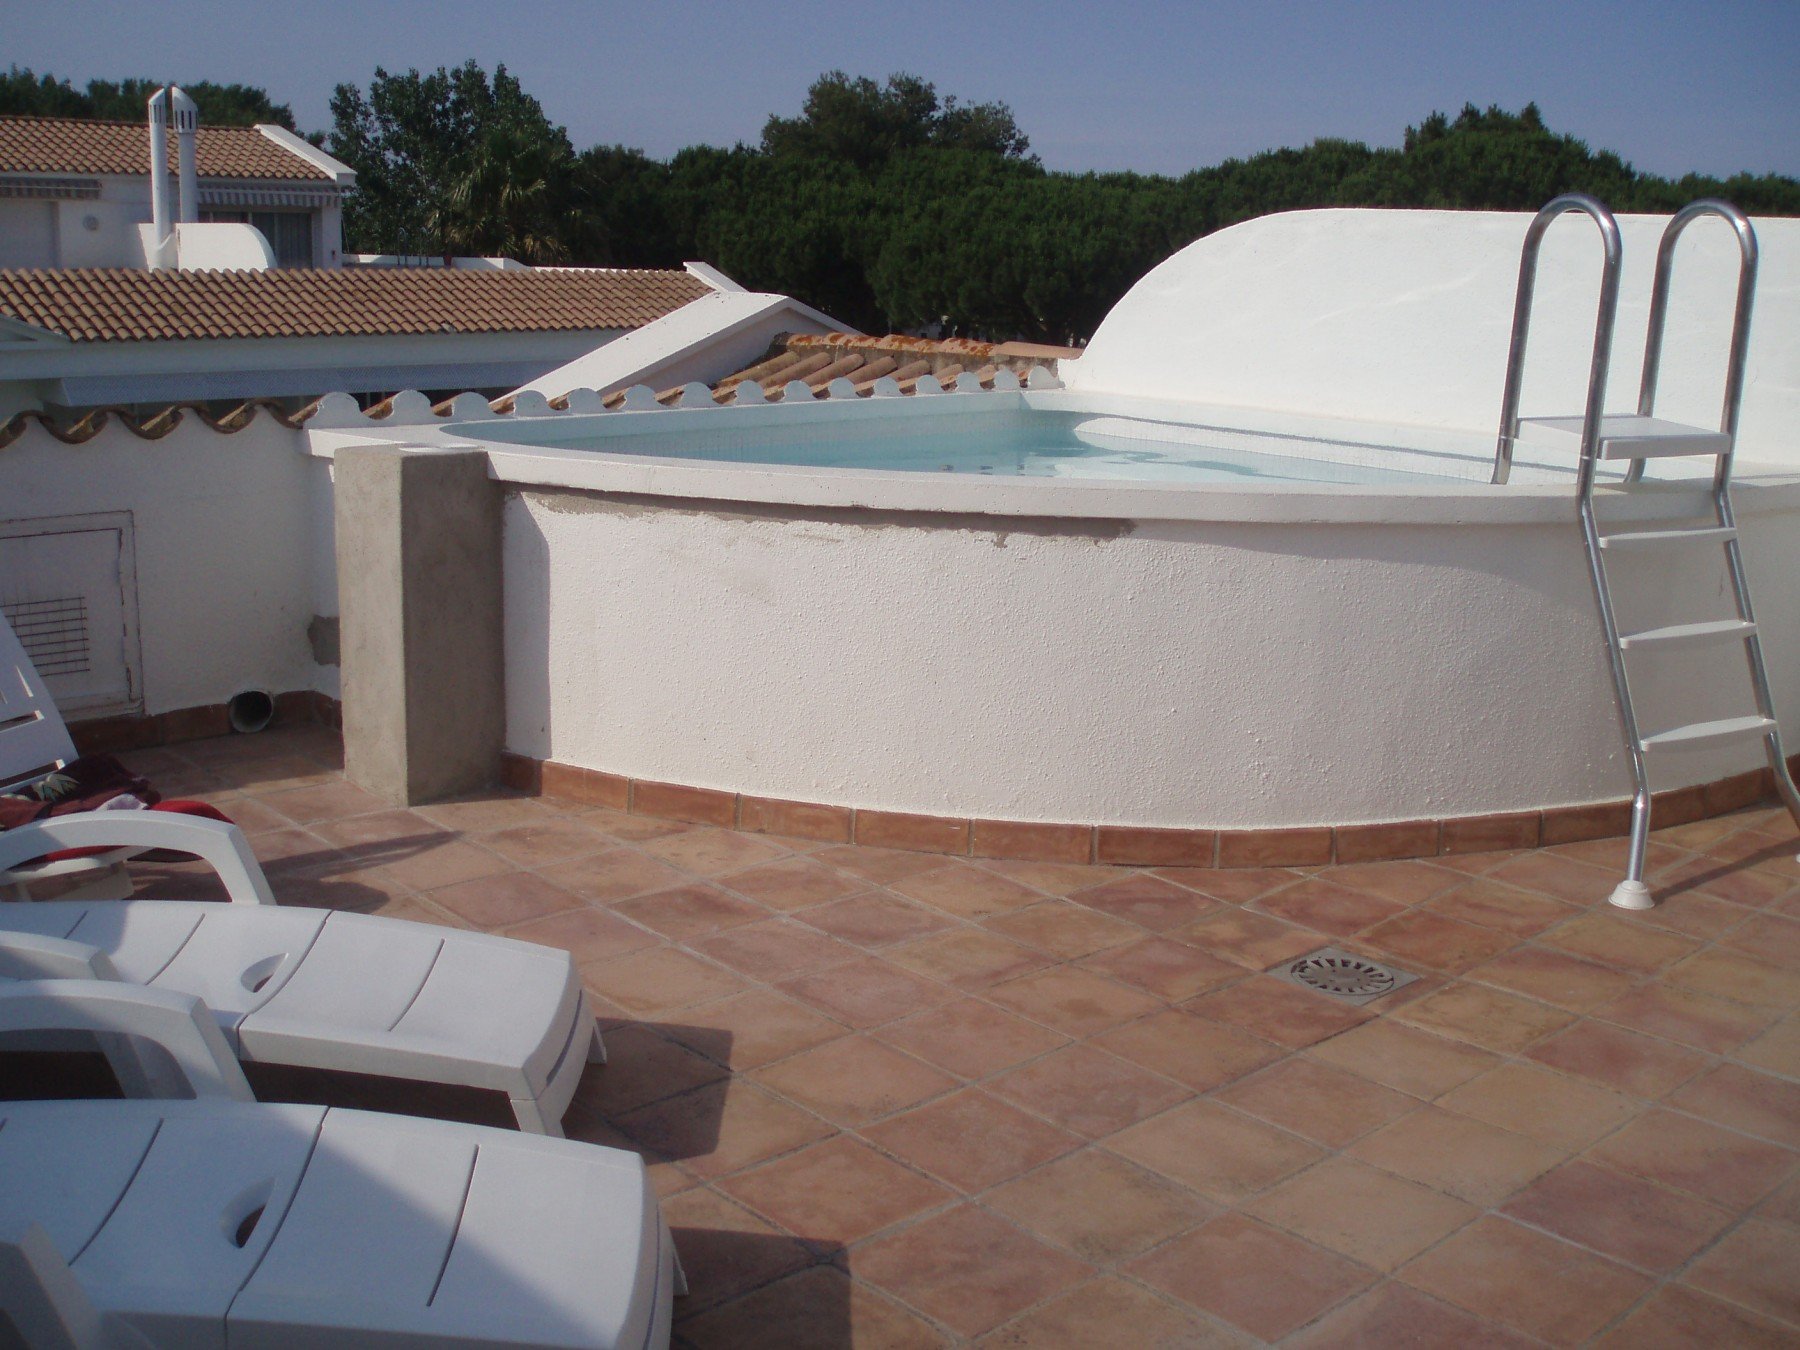 GREEN CLUB P 303 for 6 guests in Pals, Spain